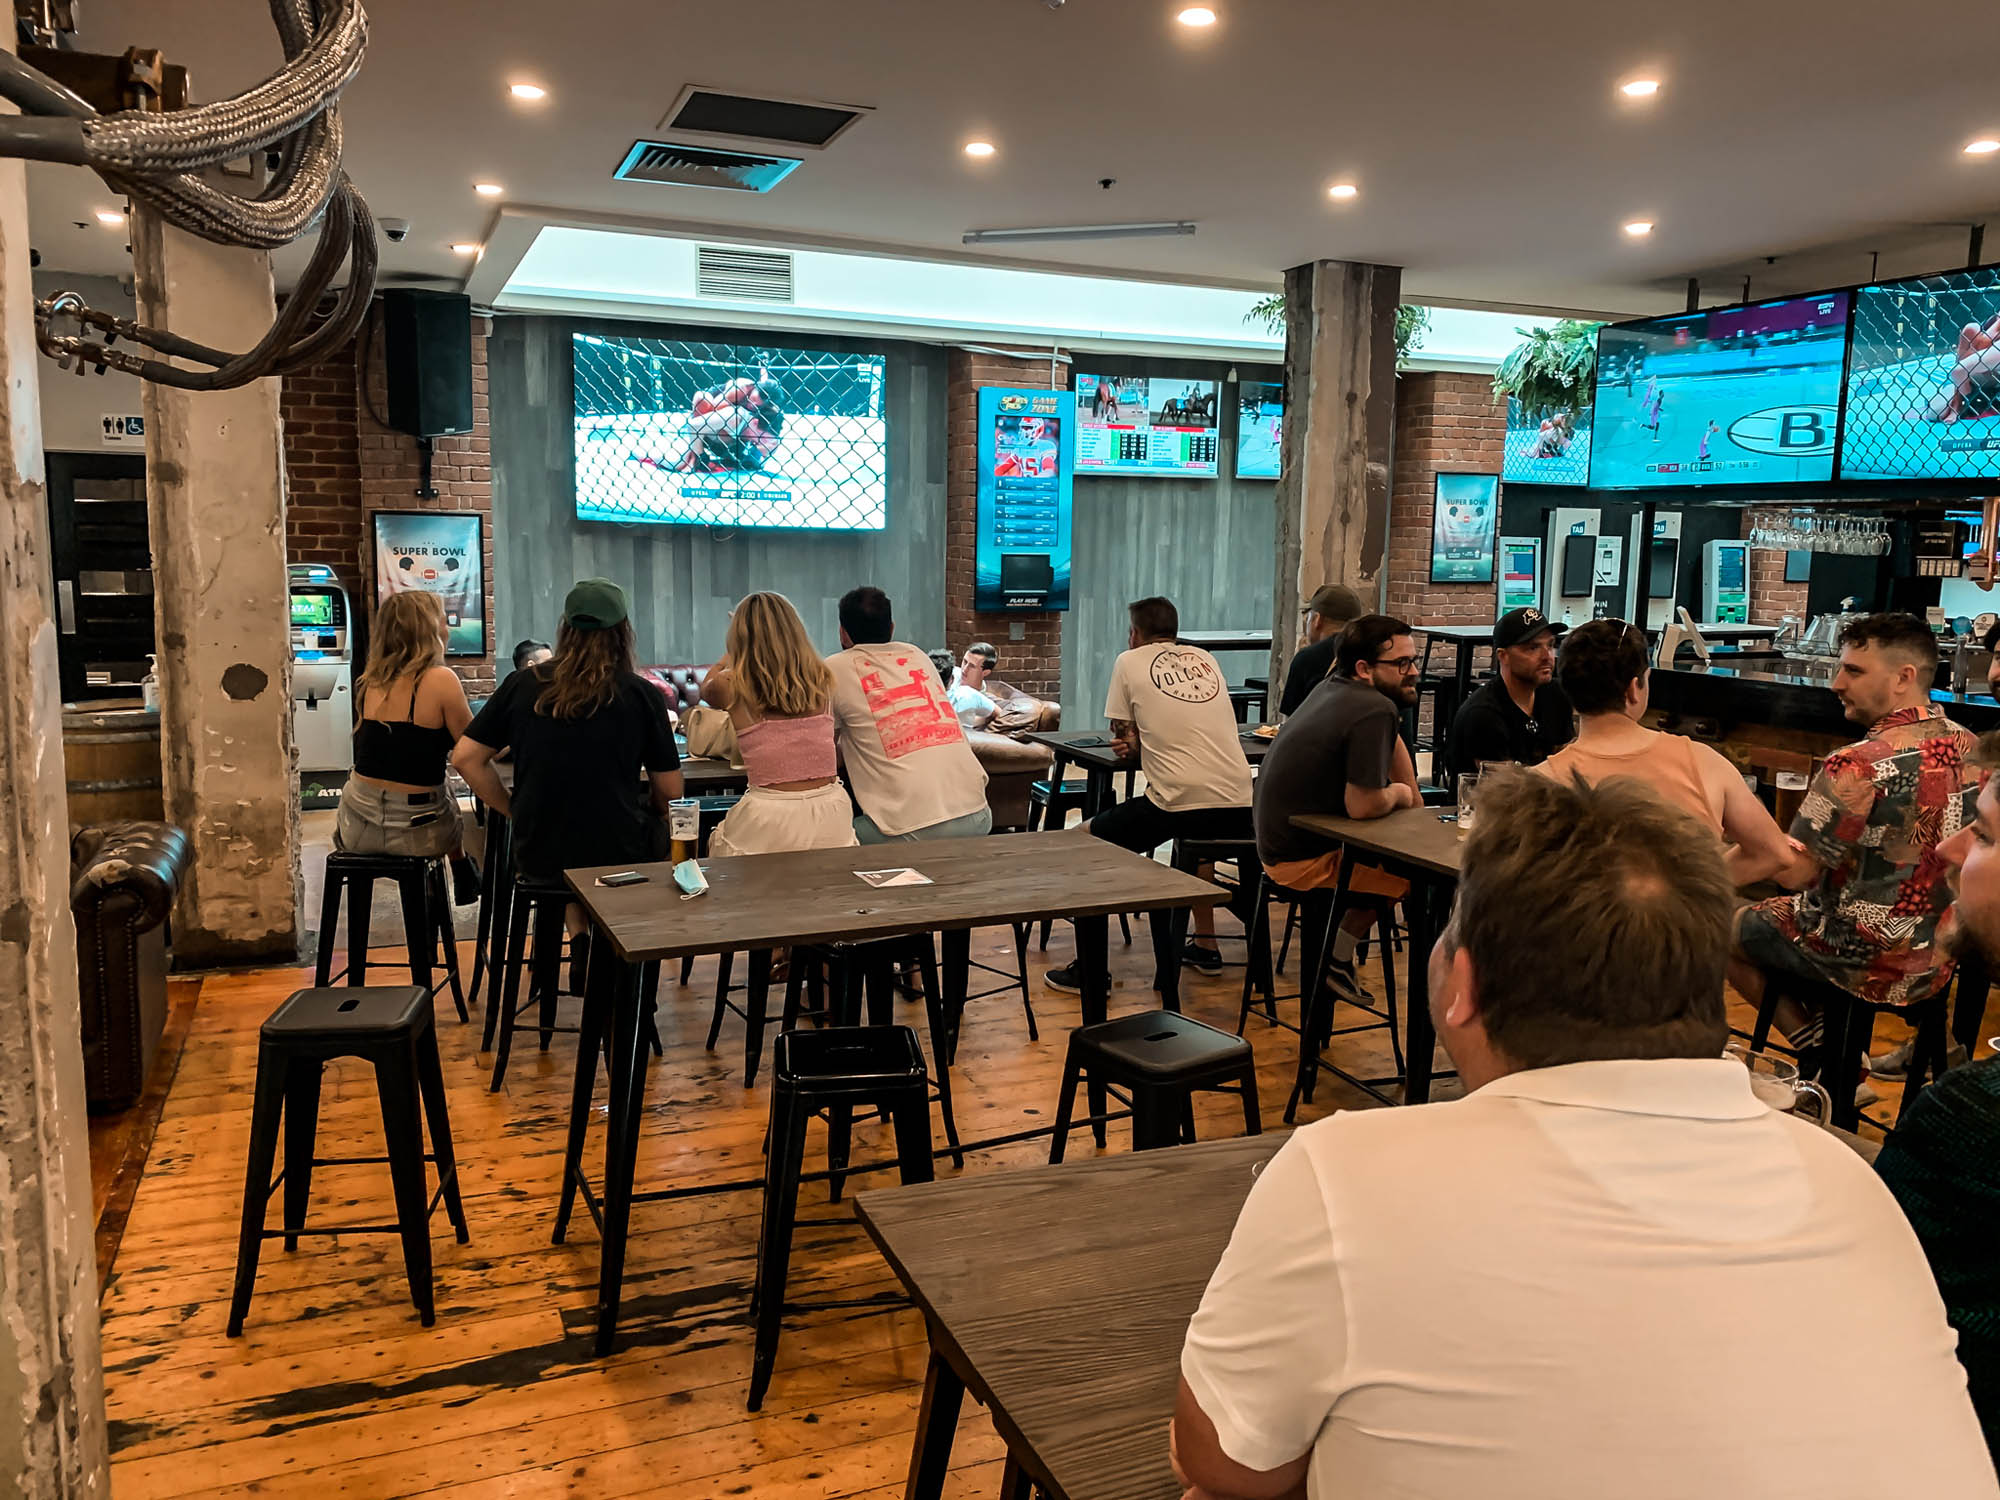 Melbourne Spots Bar showing Live Sport on the Big Screen